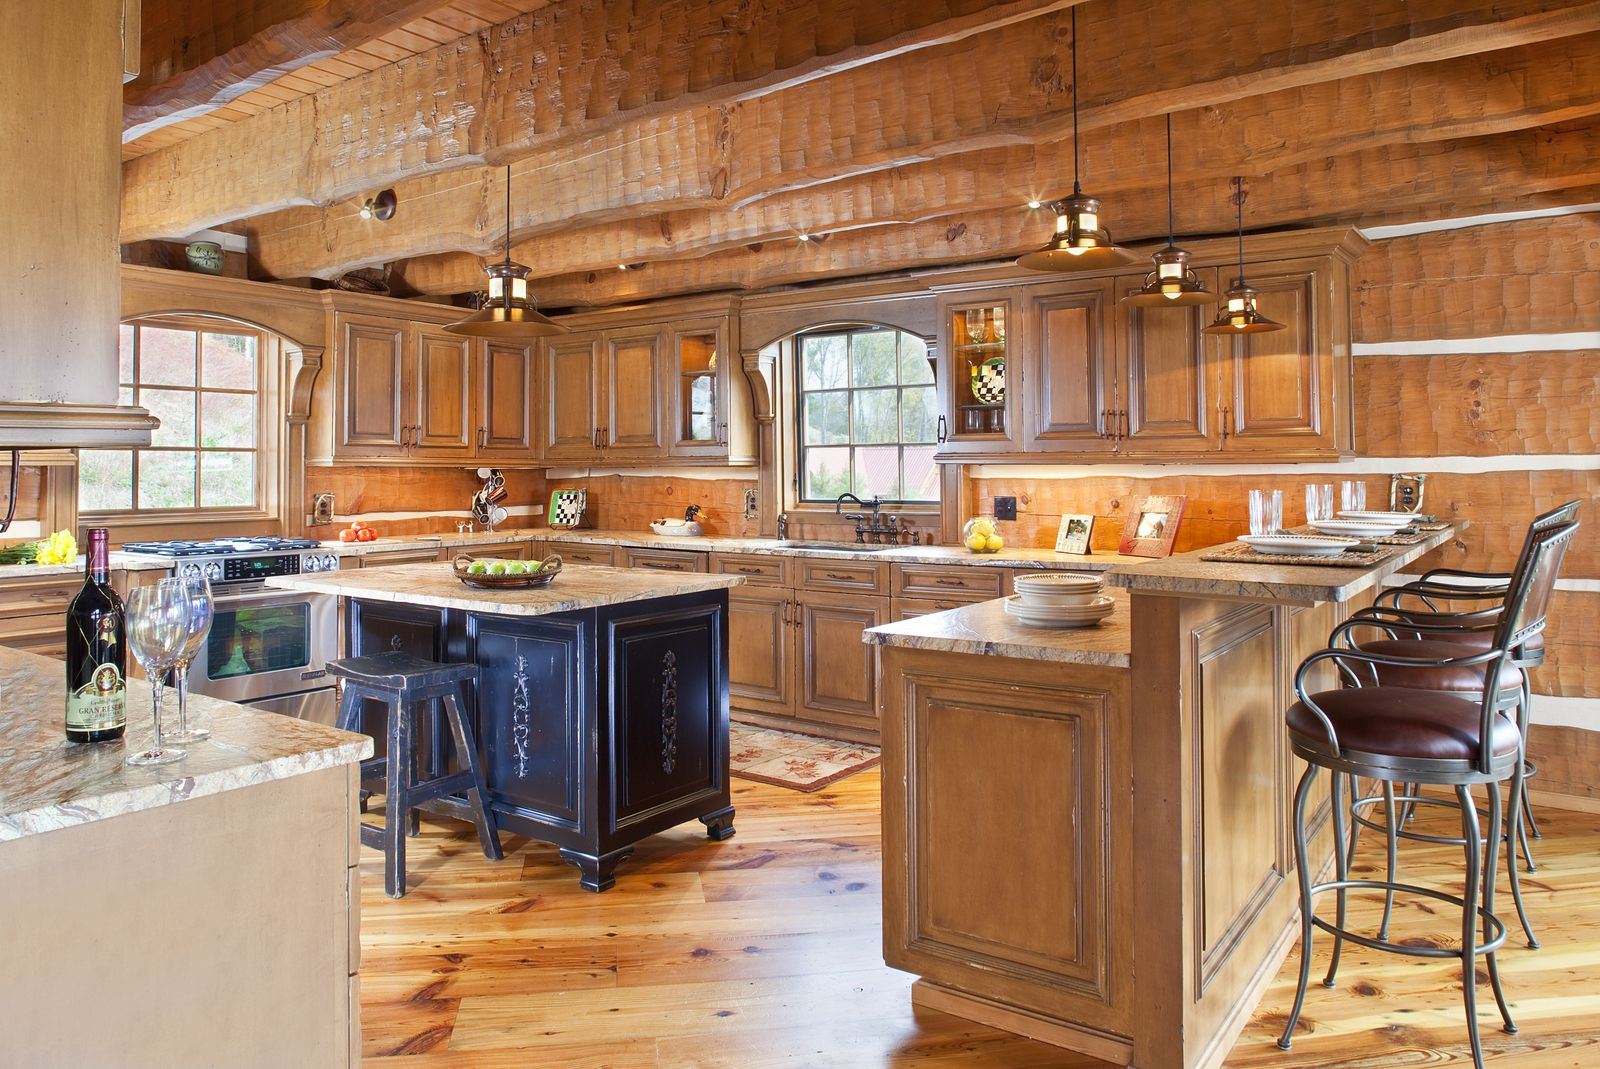 Today s log homes for advantageous and luxurious living Home kitchen